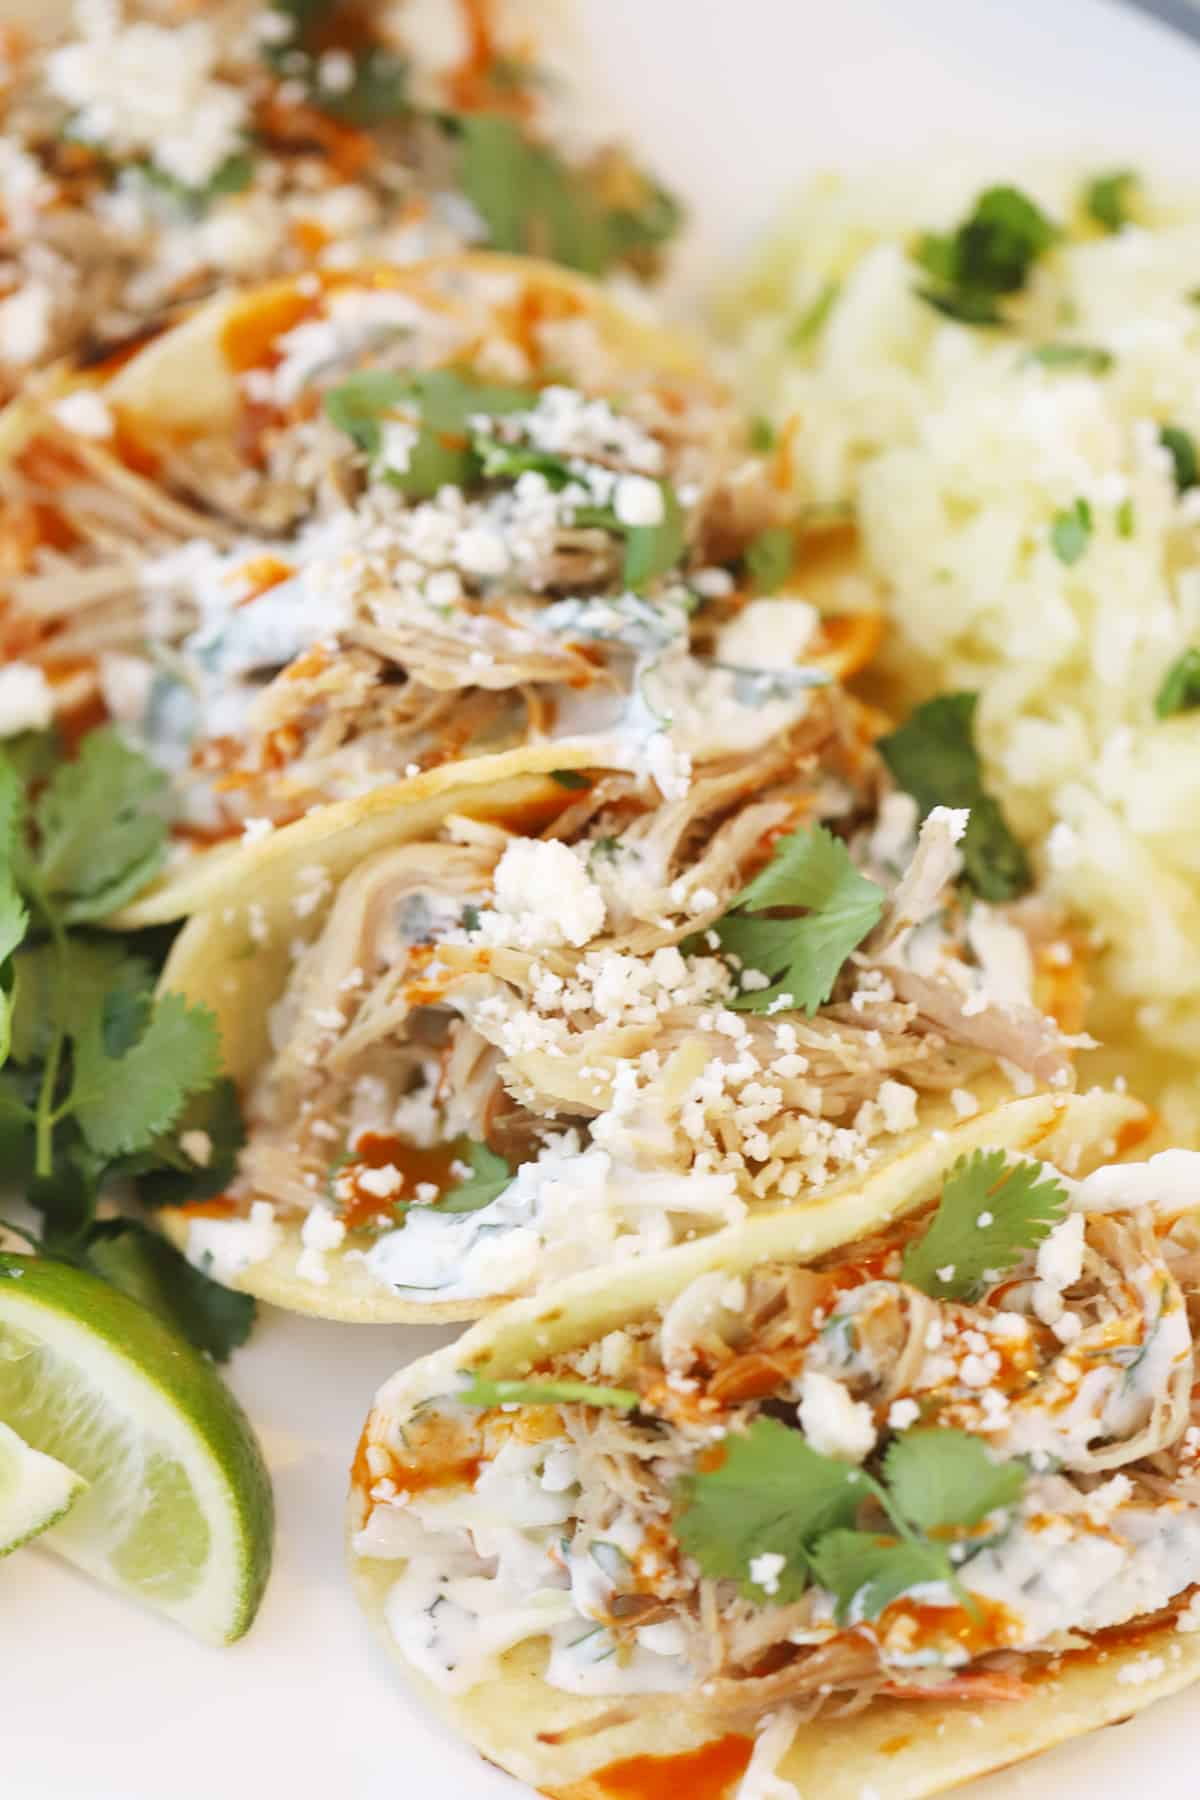 Pork Carnitas Tacos topped with cheese, slaw and fresh cilantro on a platter.